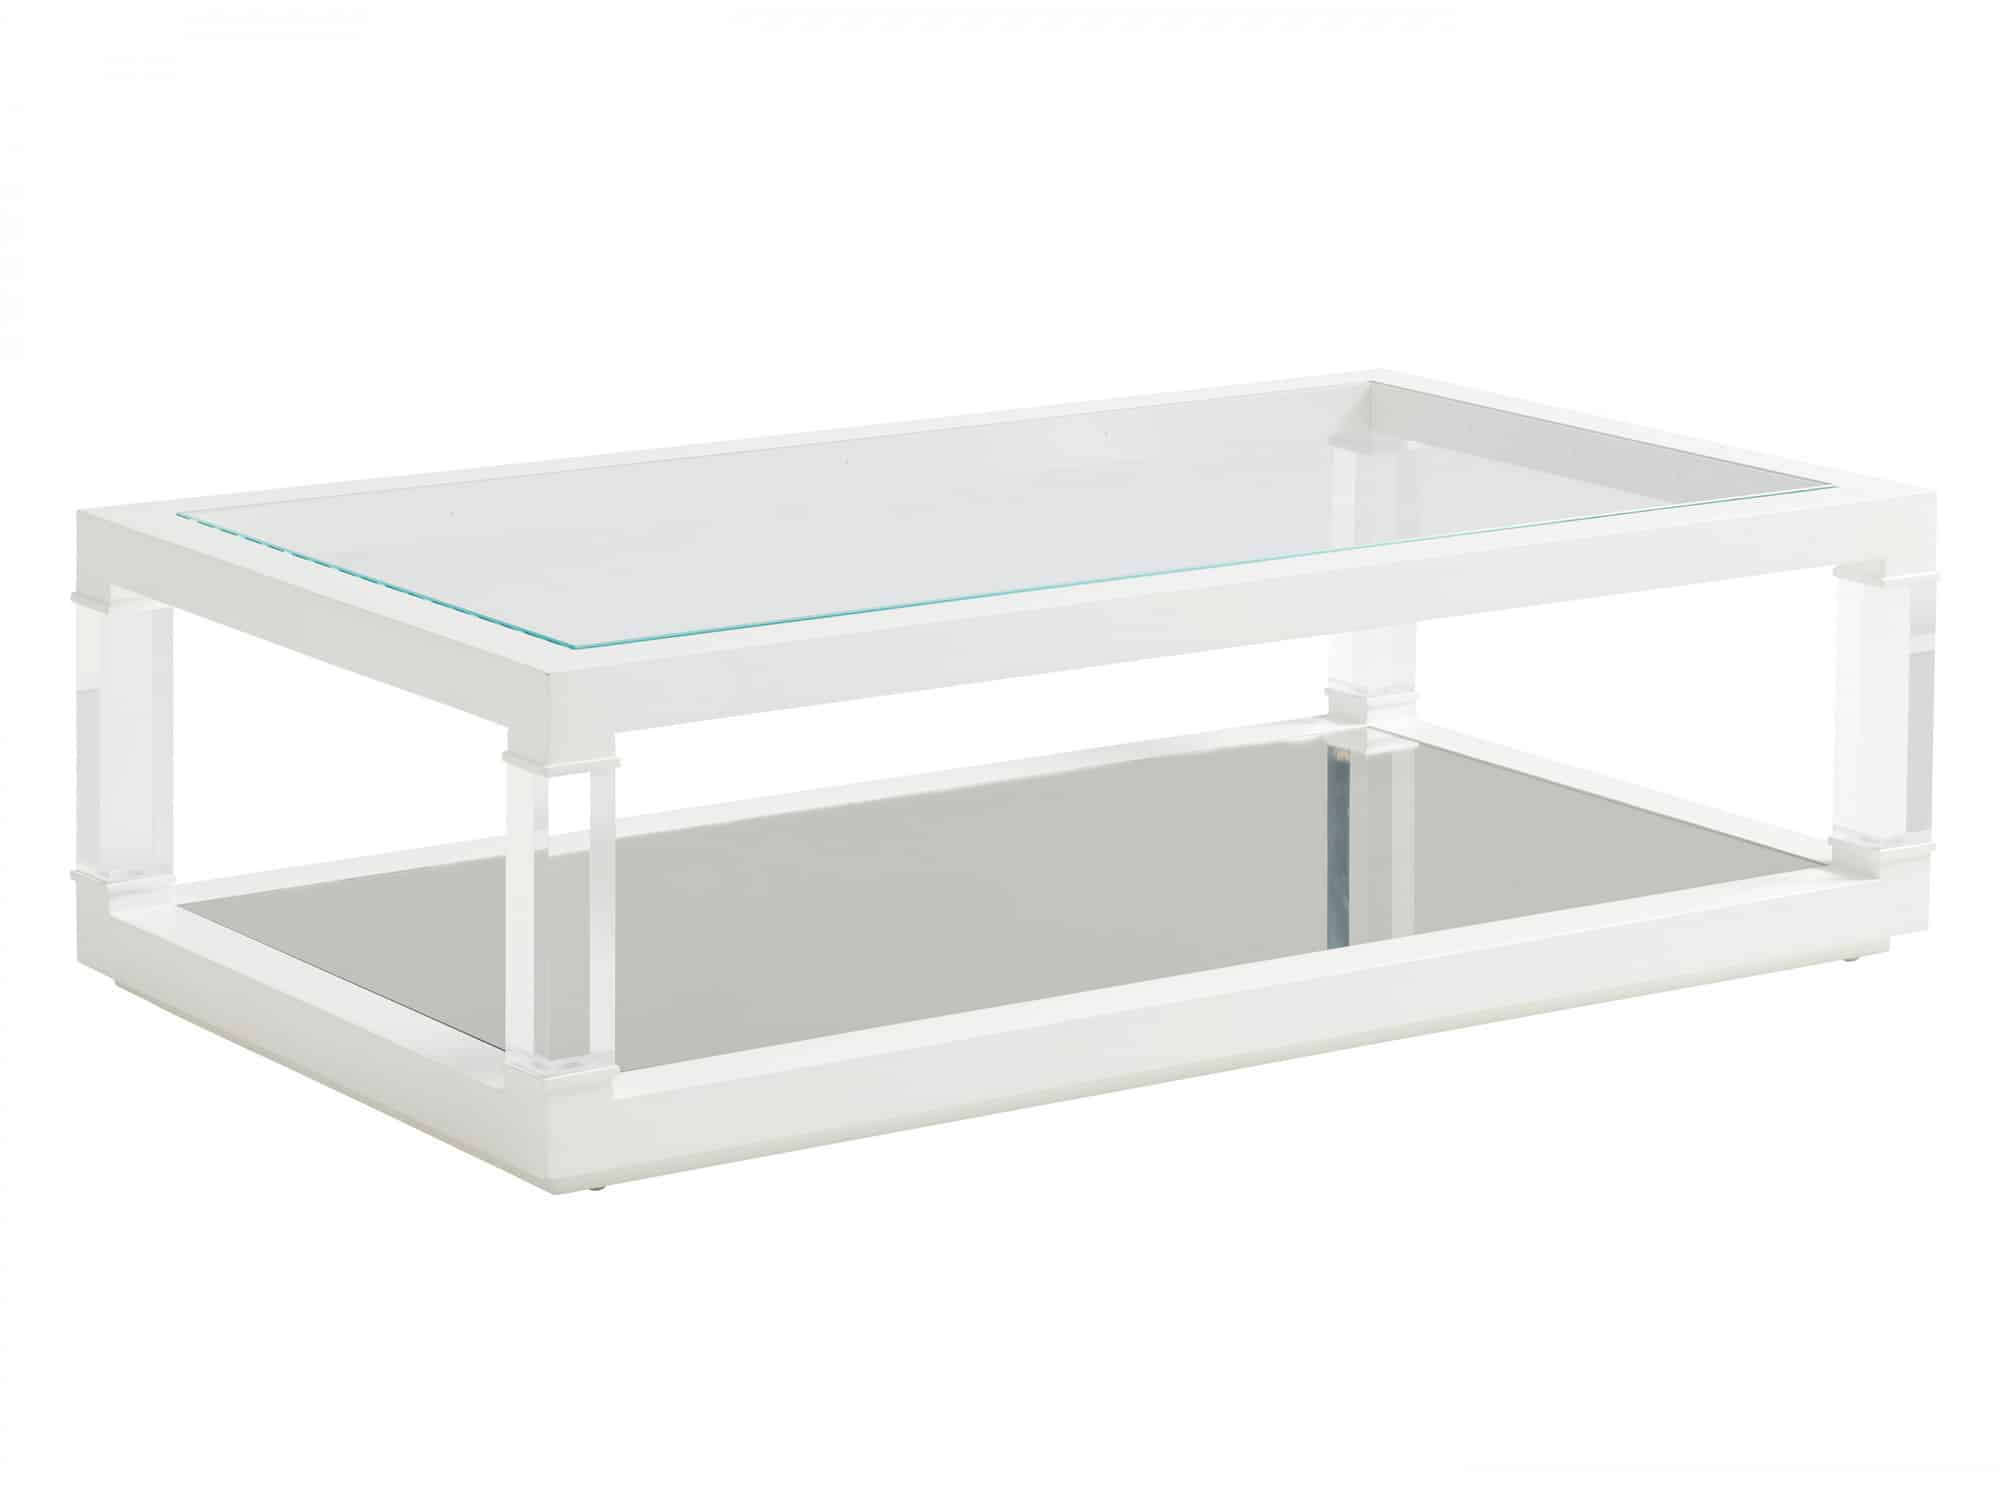 Rectengular table with acrylic base and legs, inset glass top, mirrored bottom shelf